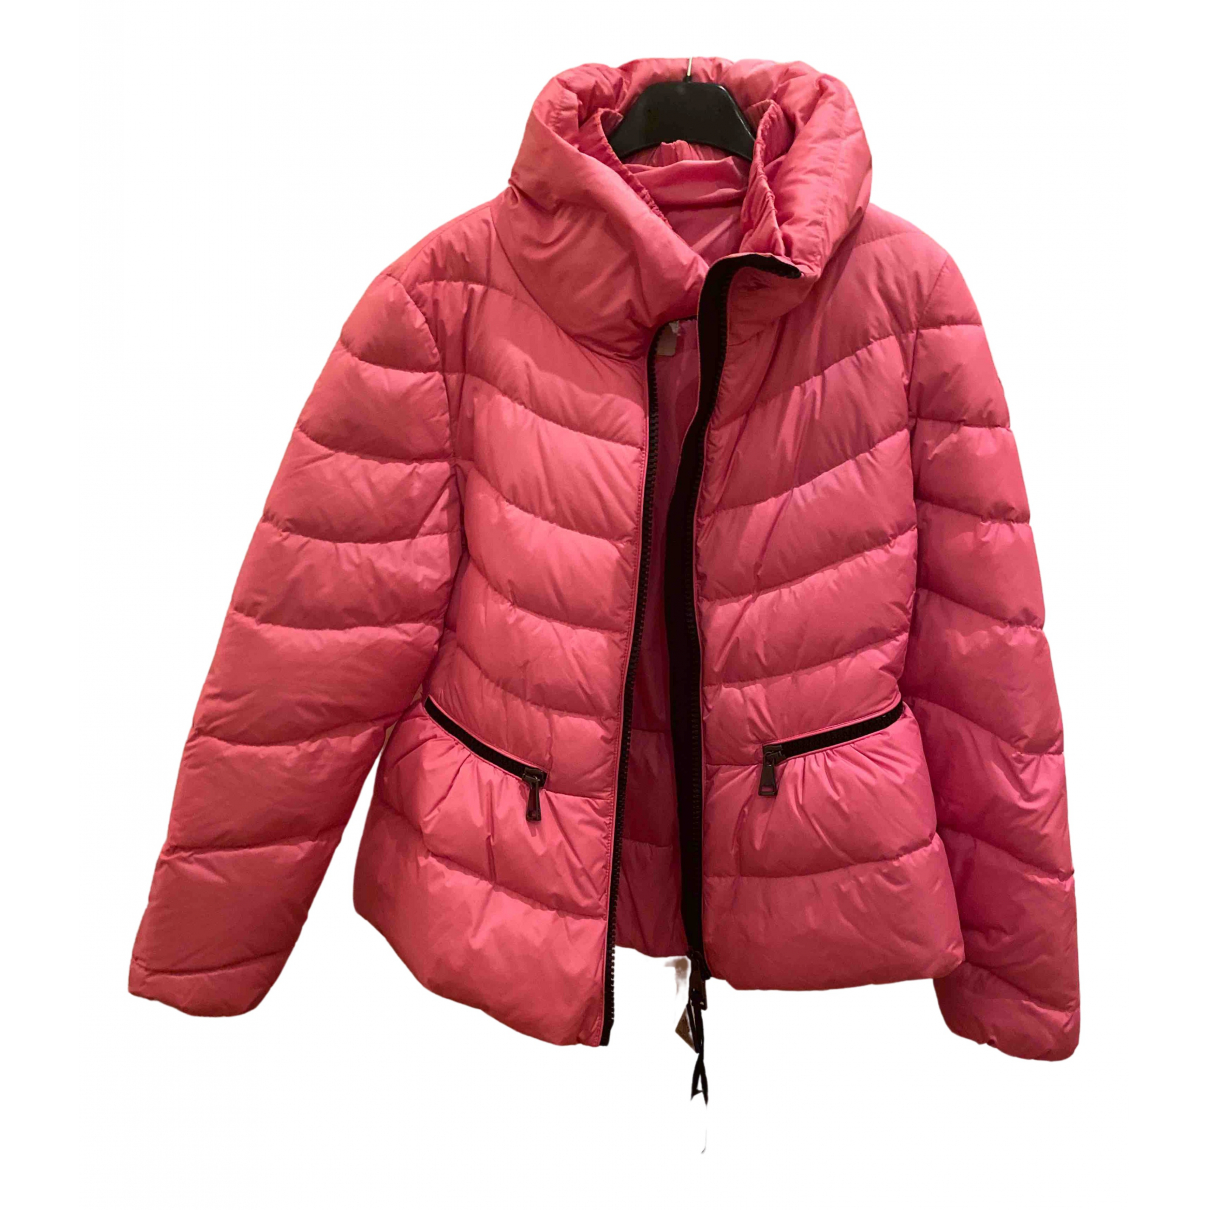 Moncler Classic Pink coat for Women 2 0-5